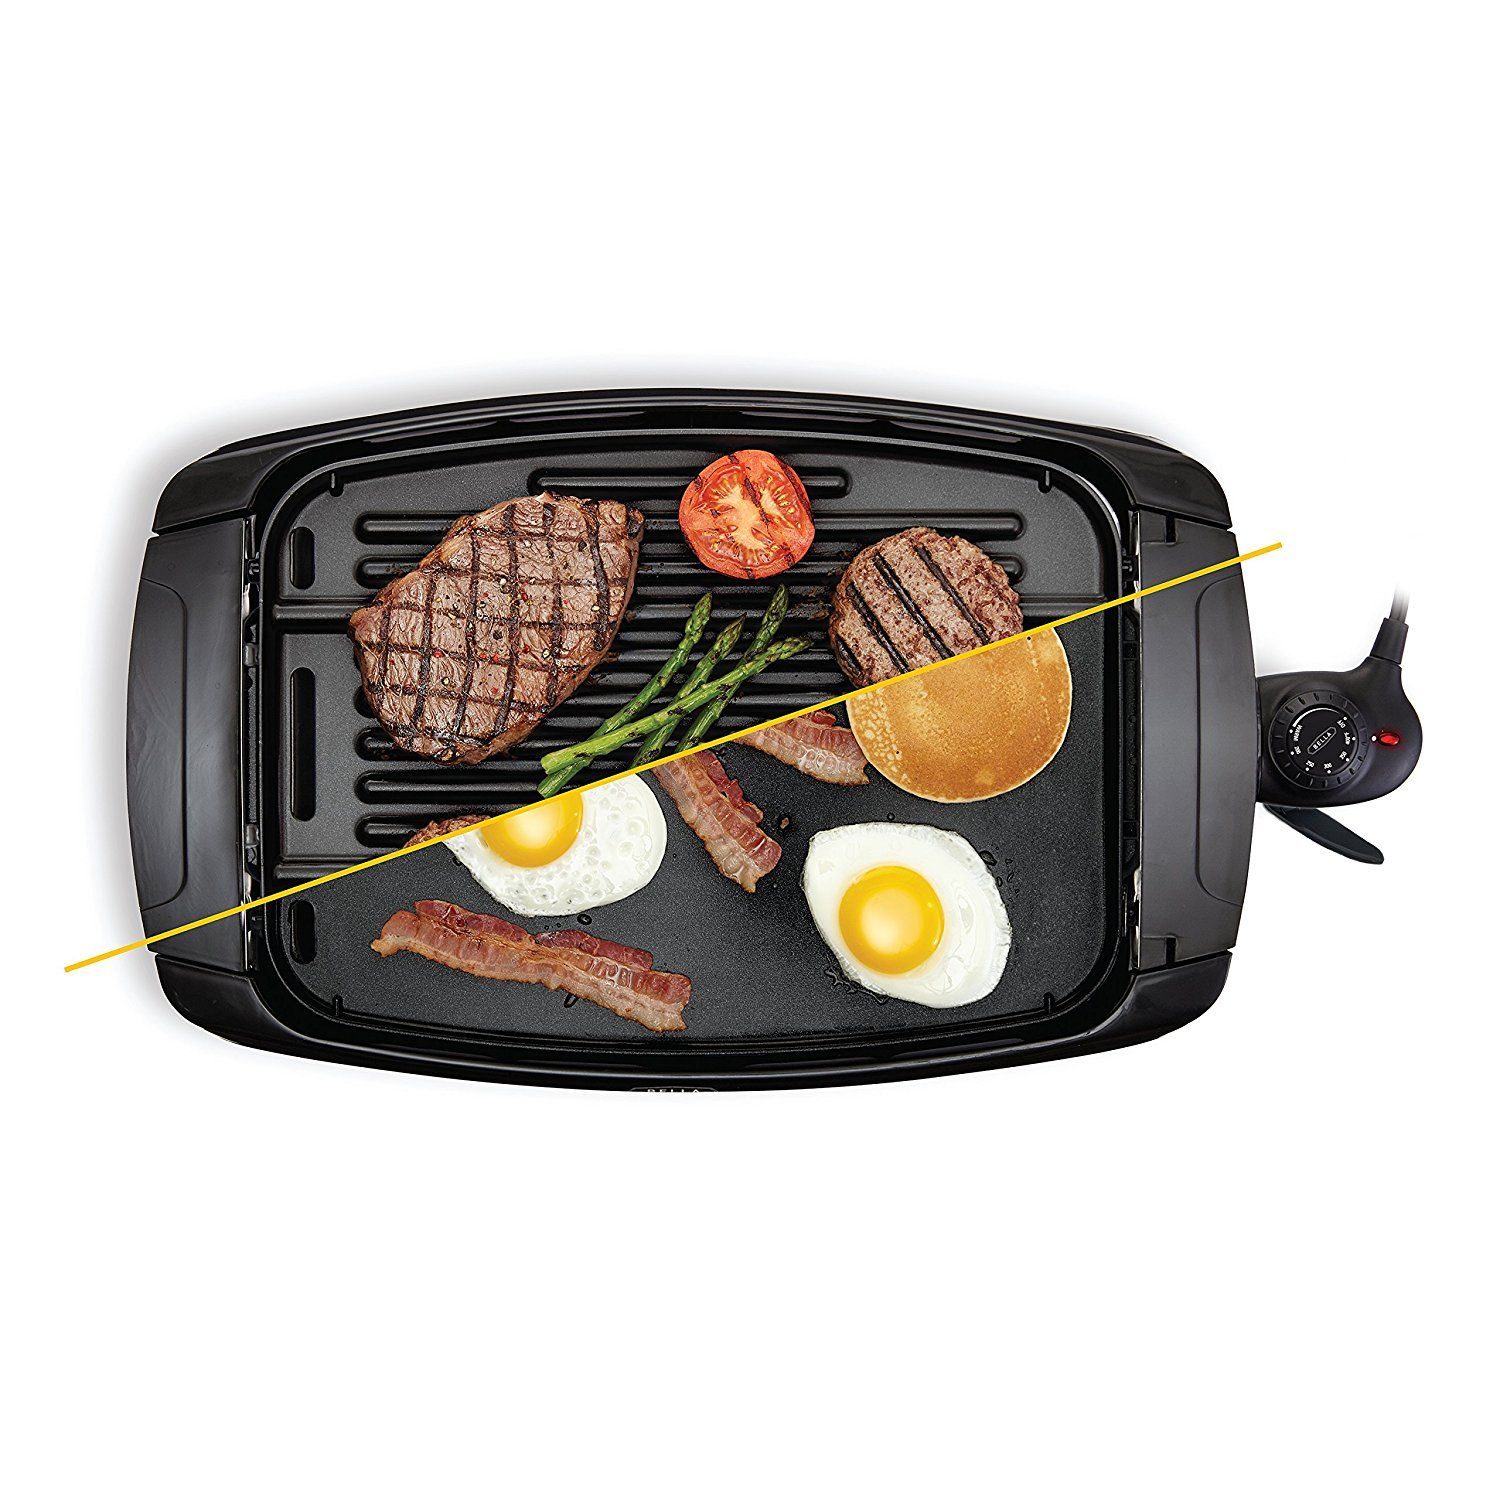 Bella 2 In 1 Reversible Grill Griddle Combo 1500 Watts Non Stick Bpa Free Learn More By Visiting The Image Link Griddles Grilling Gas Grill Reviews